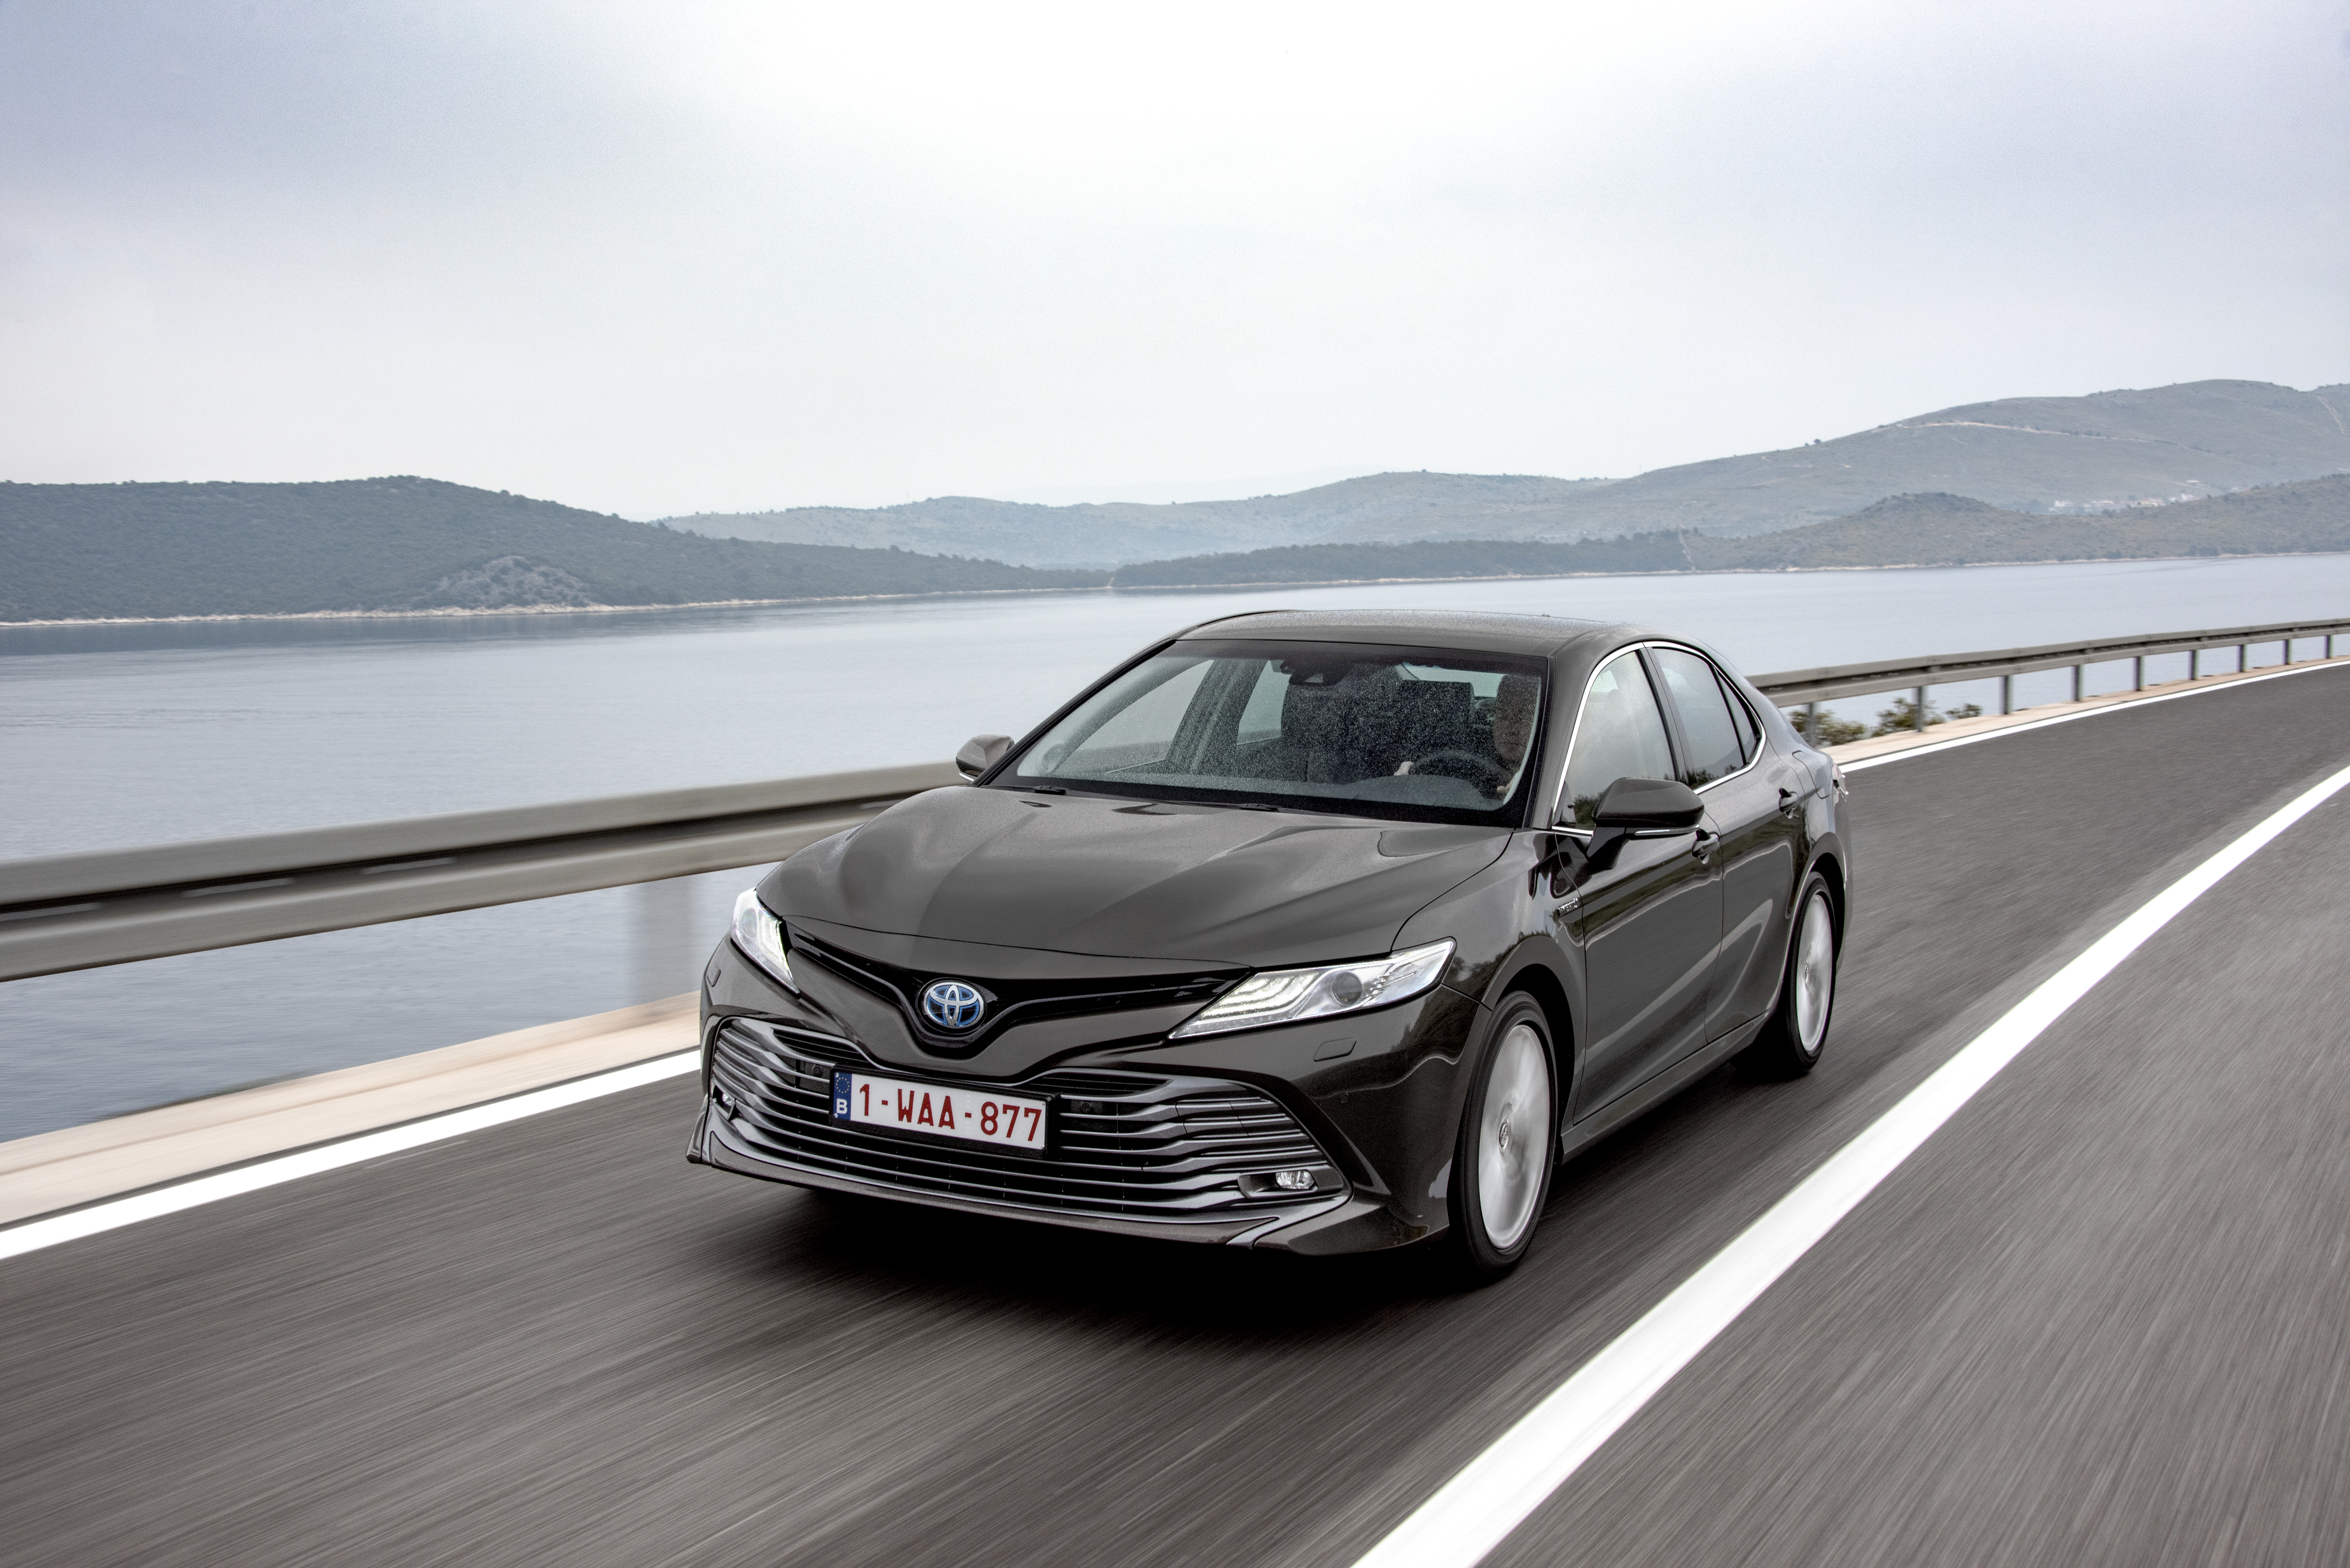 First drive: The Toyota Camry ticks most of the boxes - Evening Express